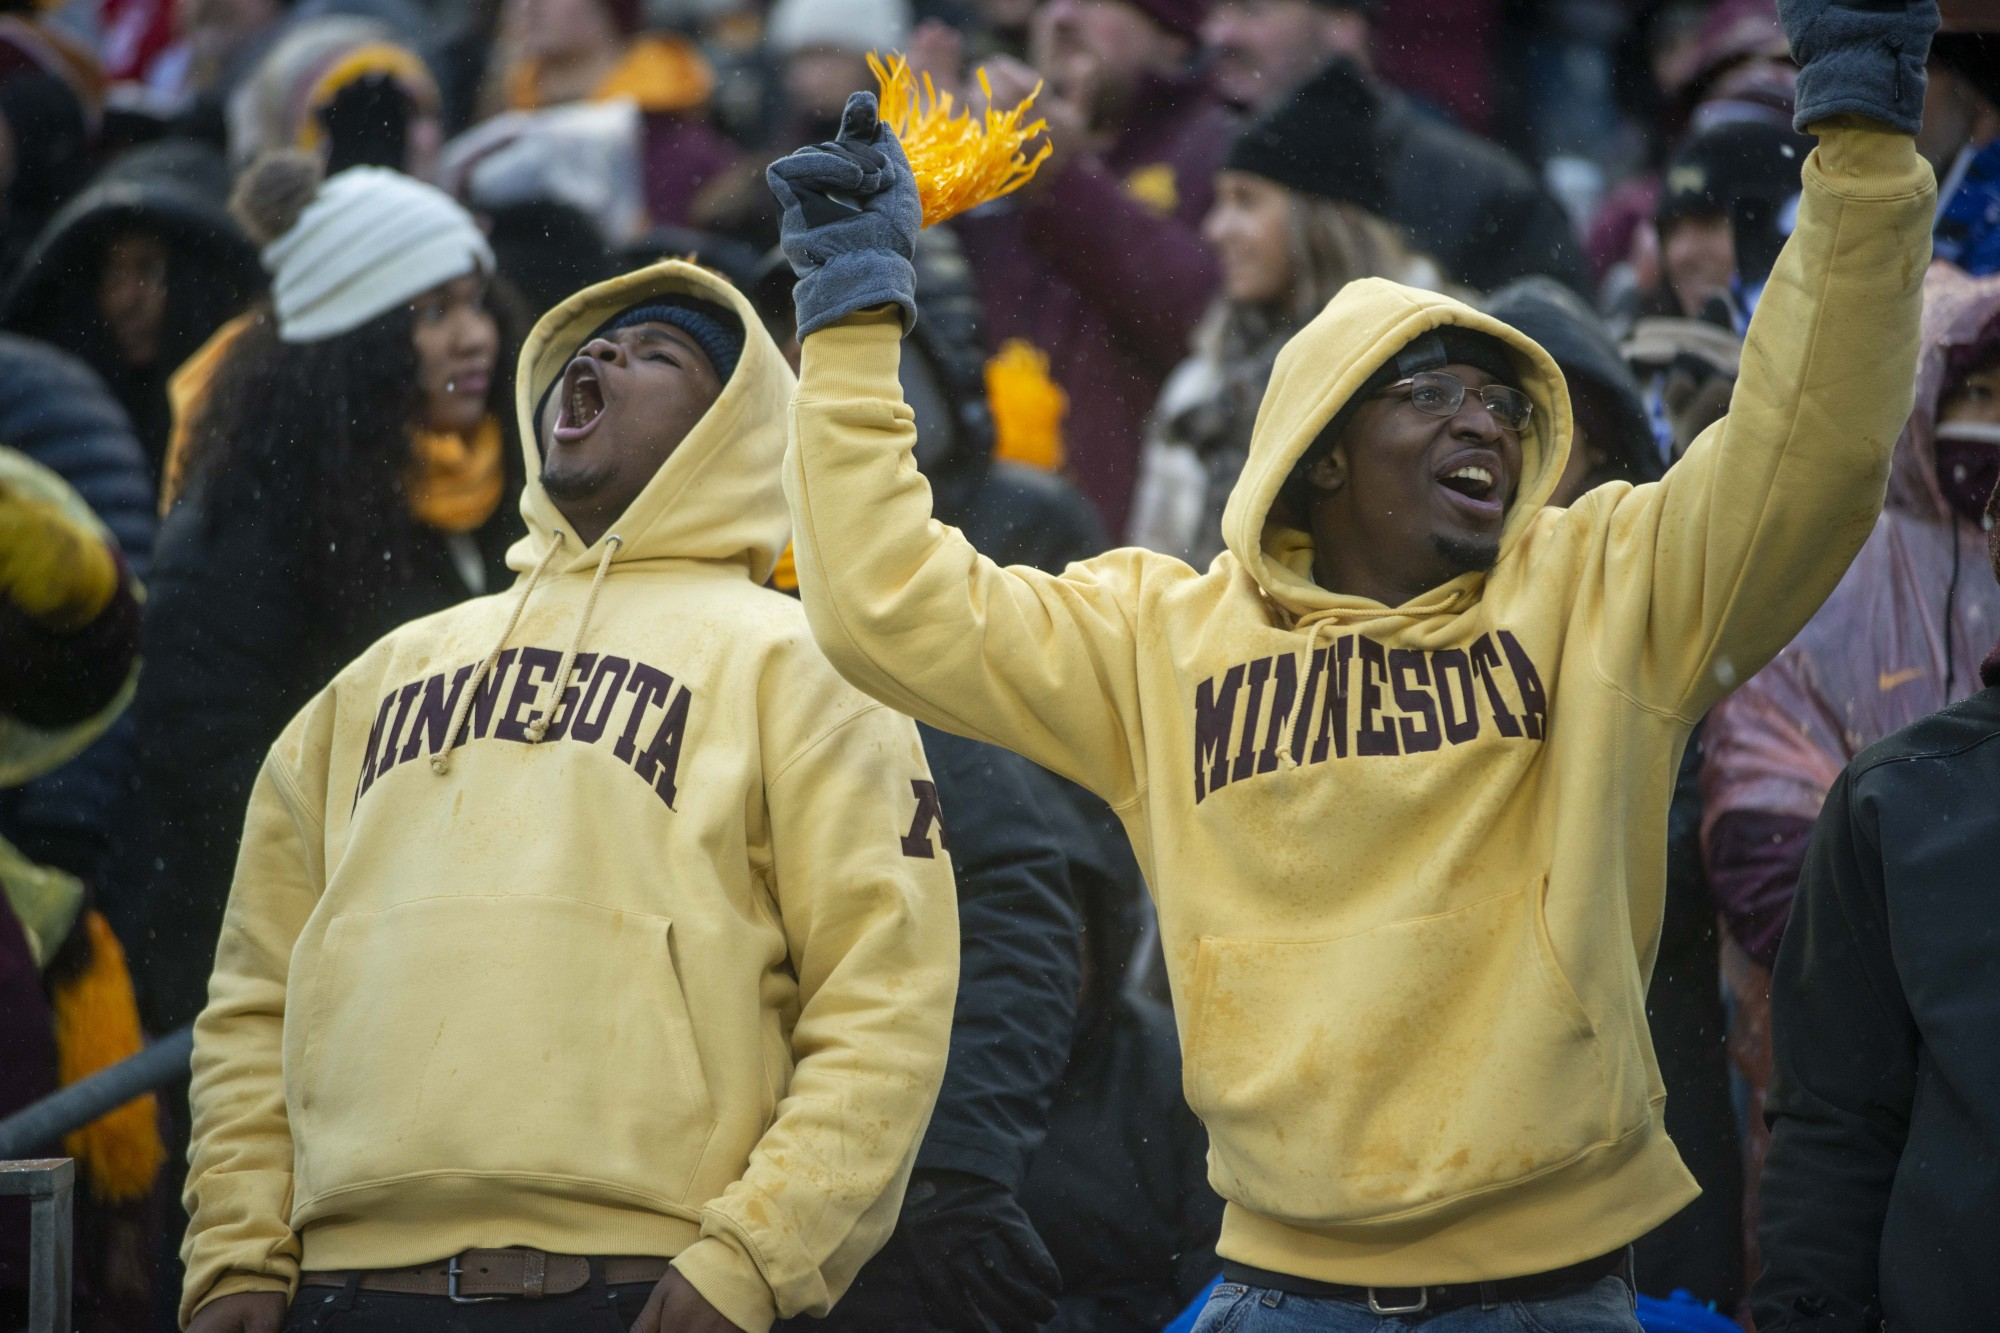 Gopher fans cheer during the game against the Badgers at TCF Bank Stadium on Saturday, Nov. 30.